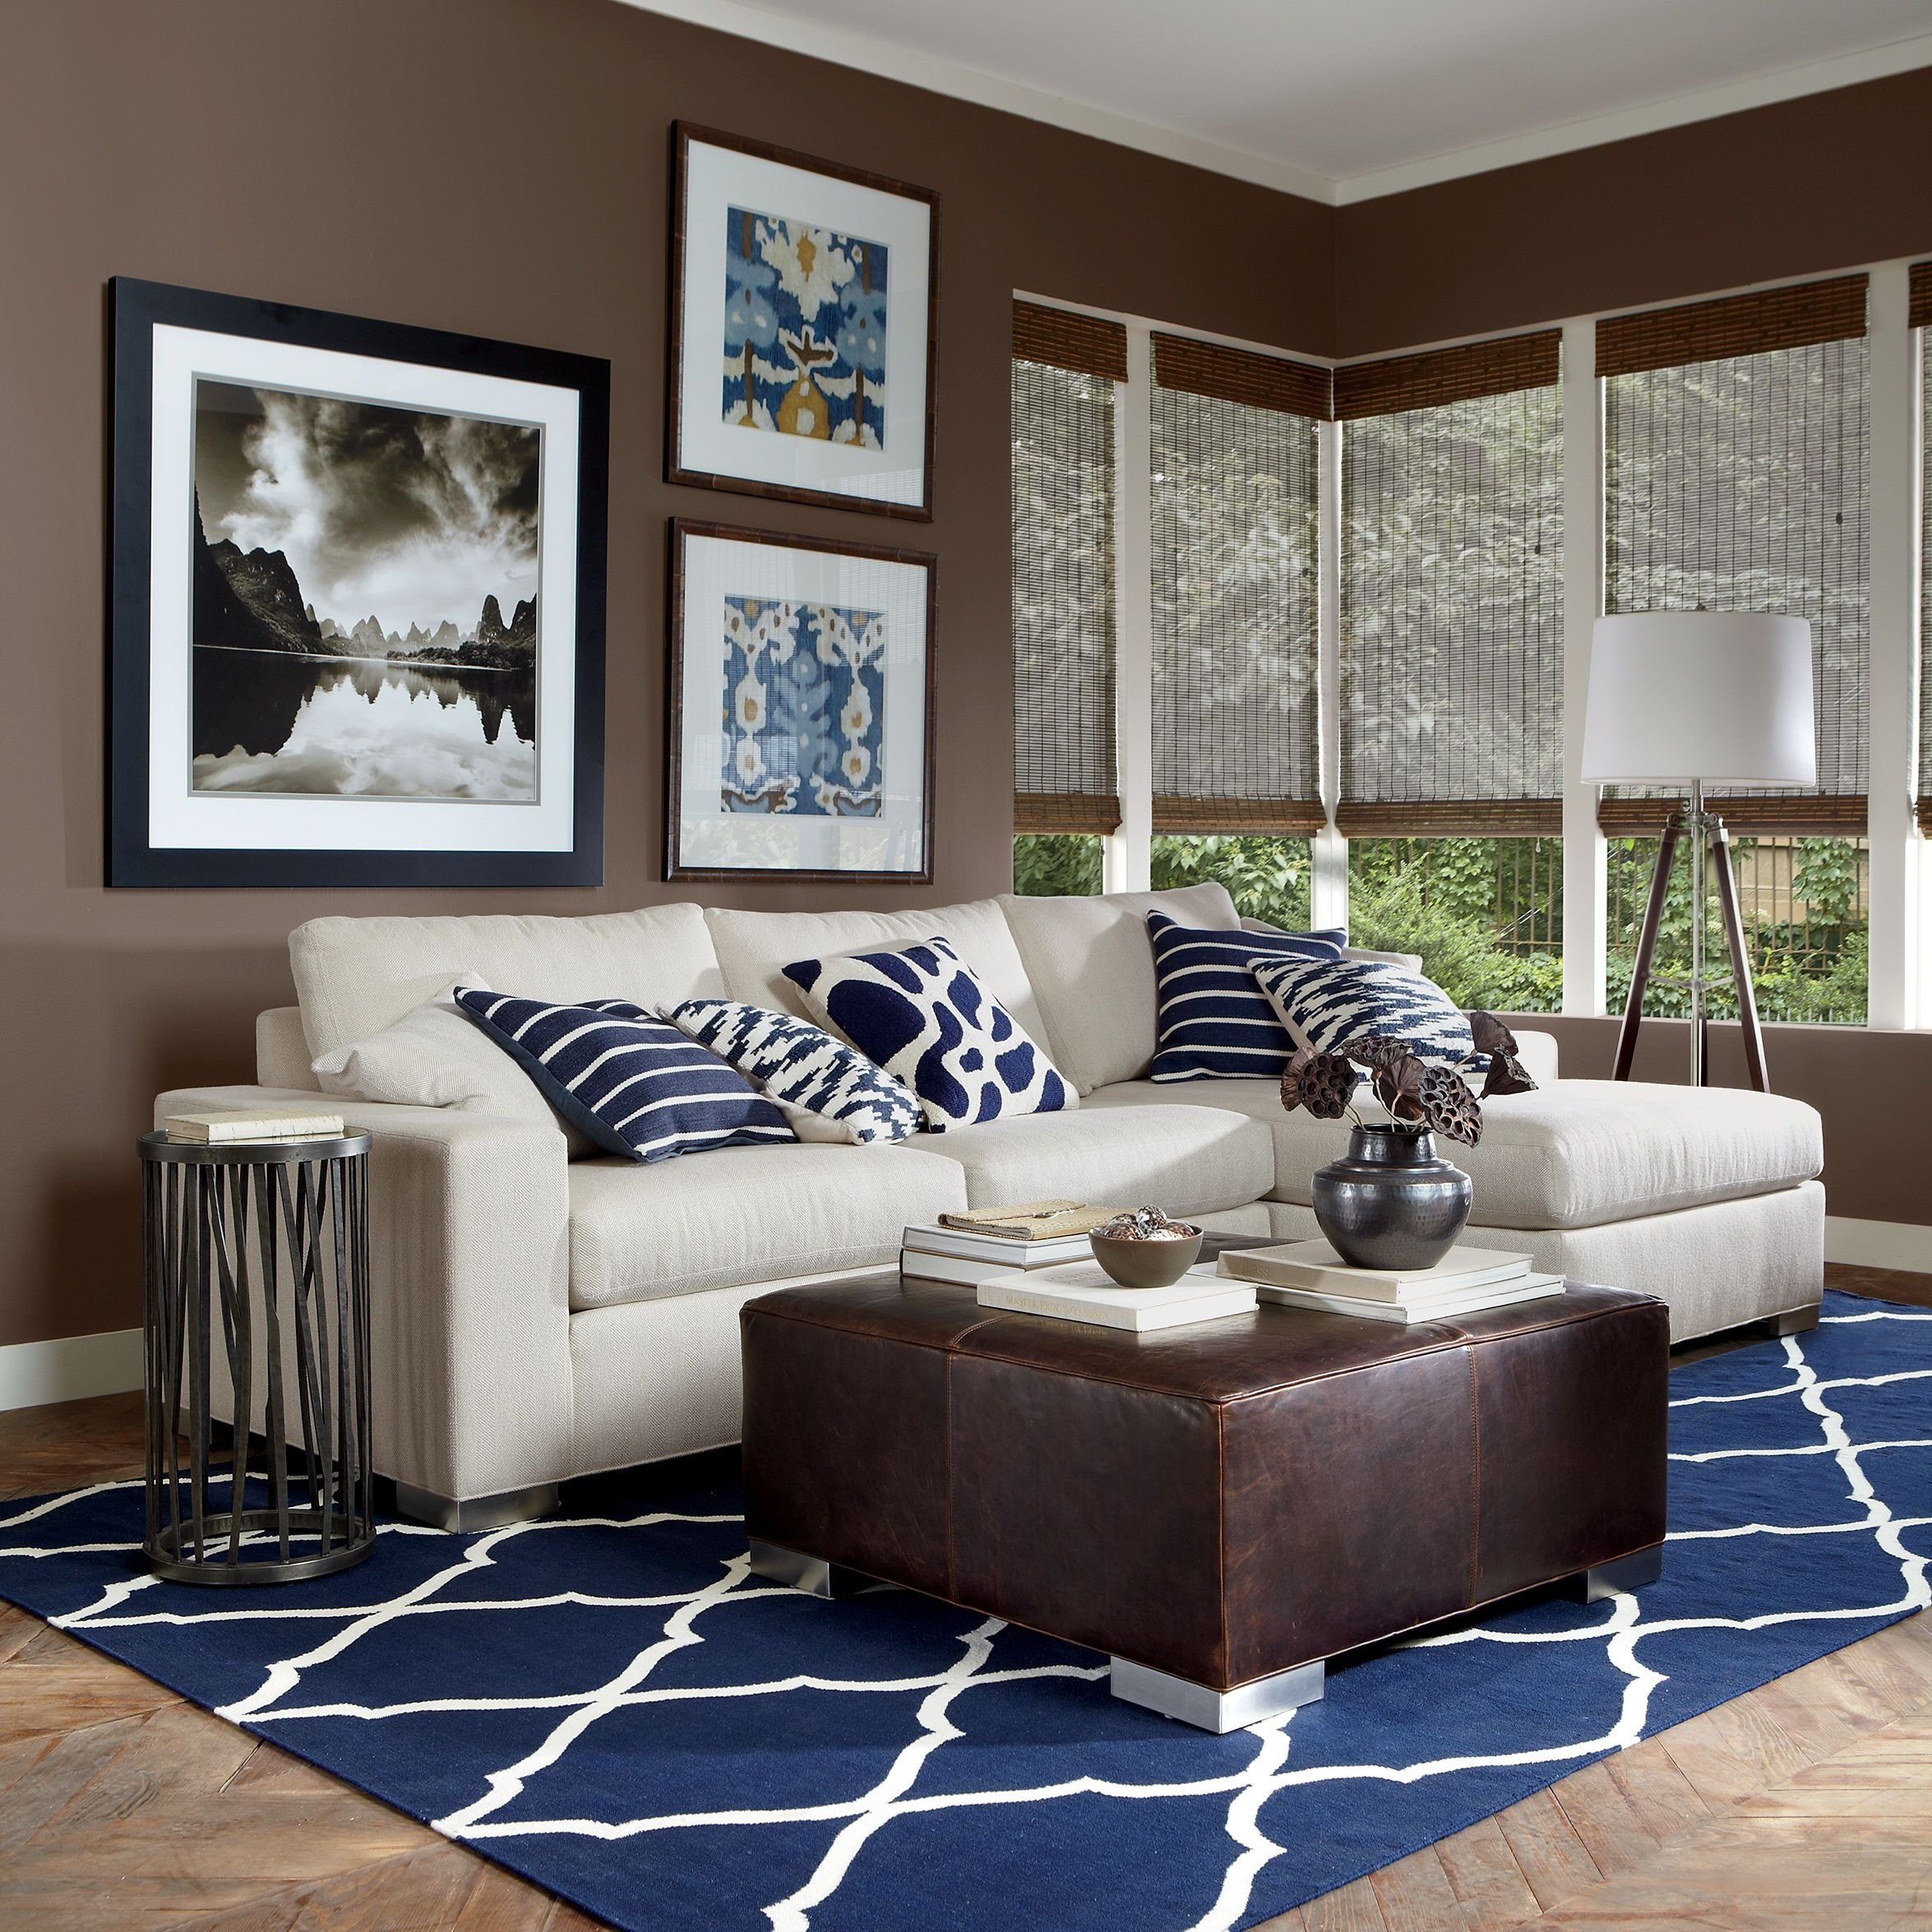 10 Attractive Blue And Brown Living Room Ideas living room blue and brown living room ideas brown and yellow